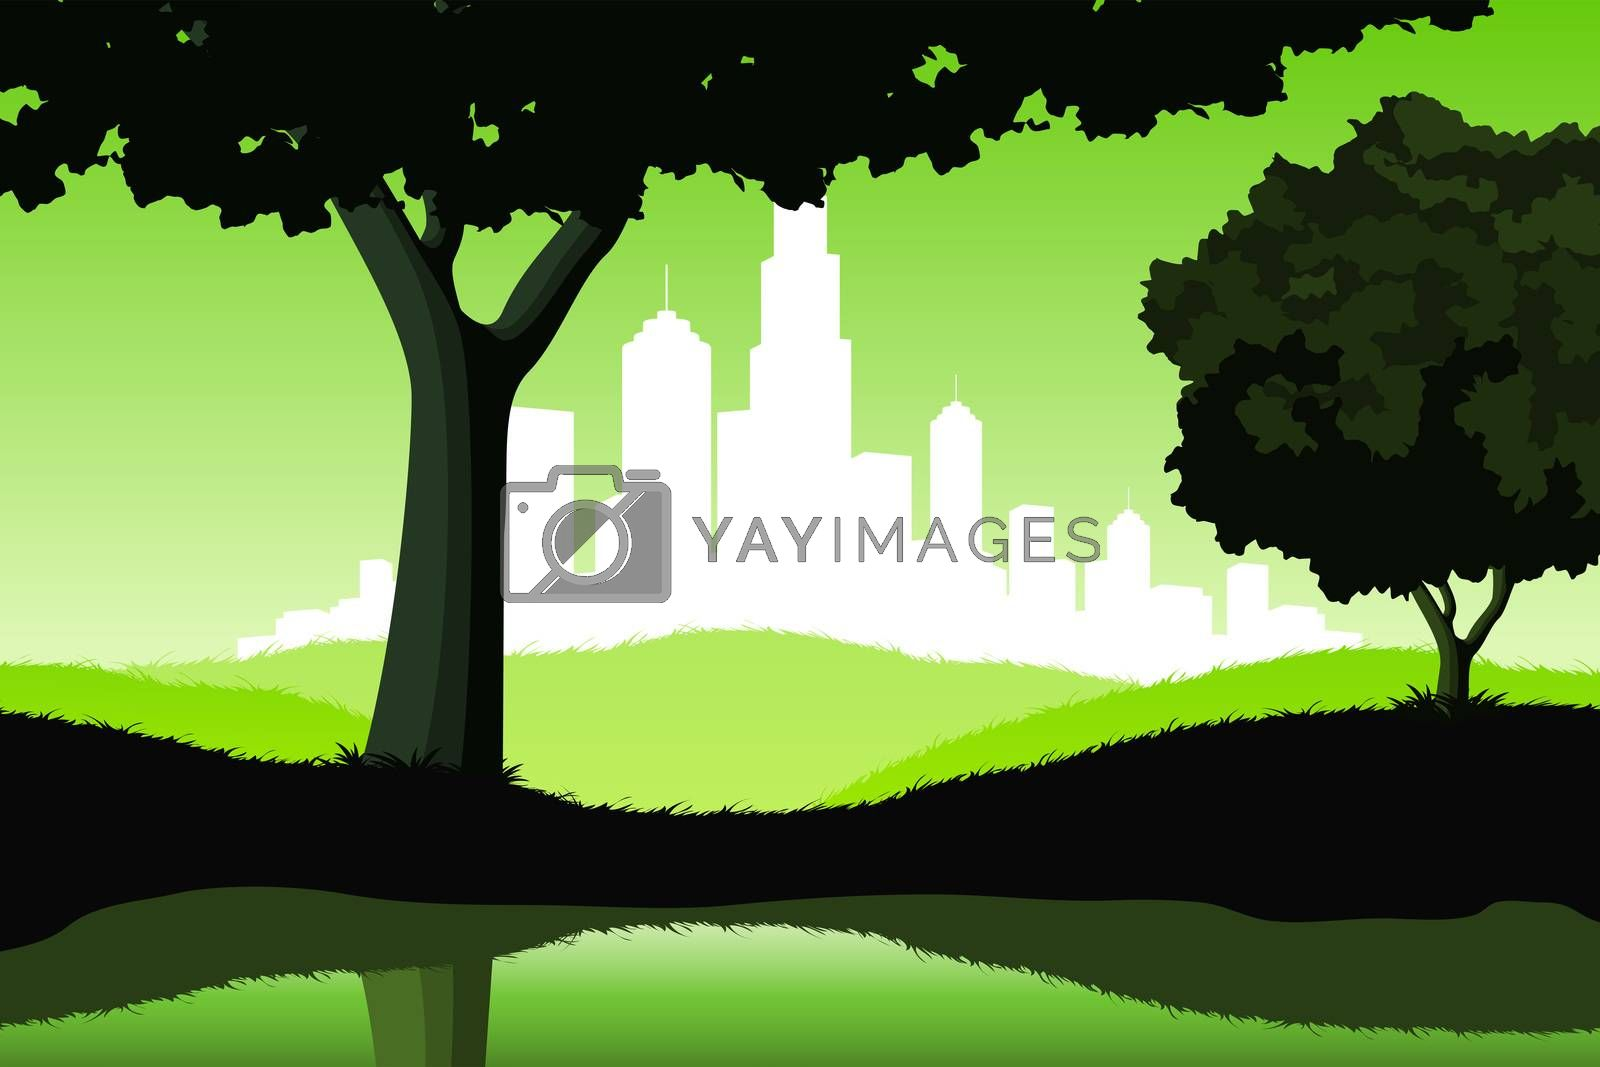 Night Landscape with trees and city silhouette by WaD